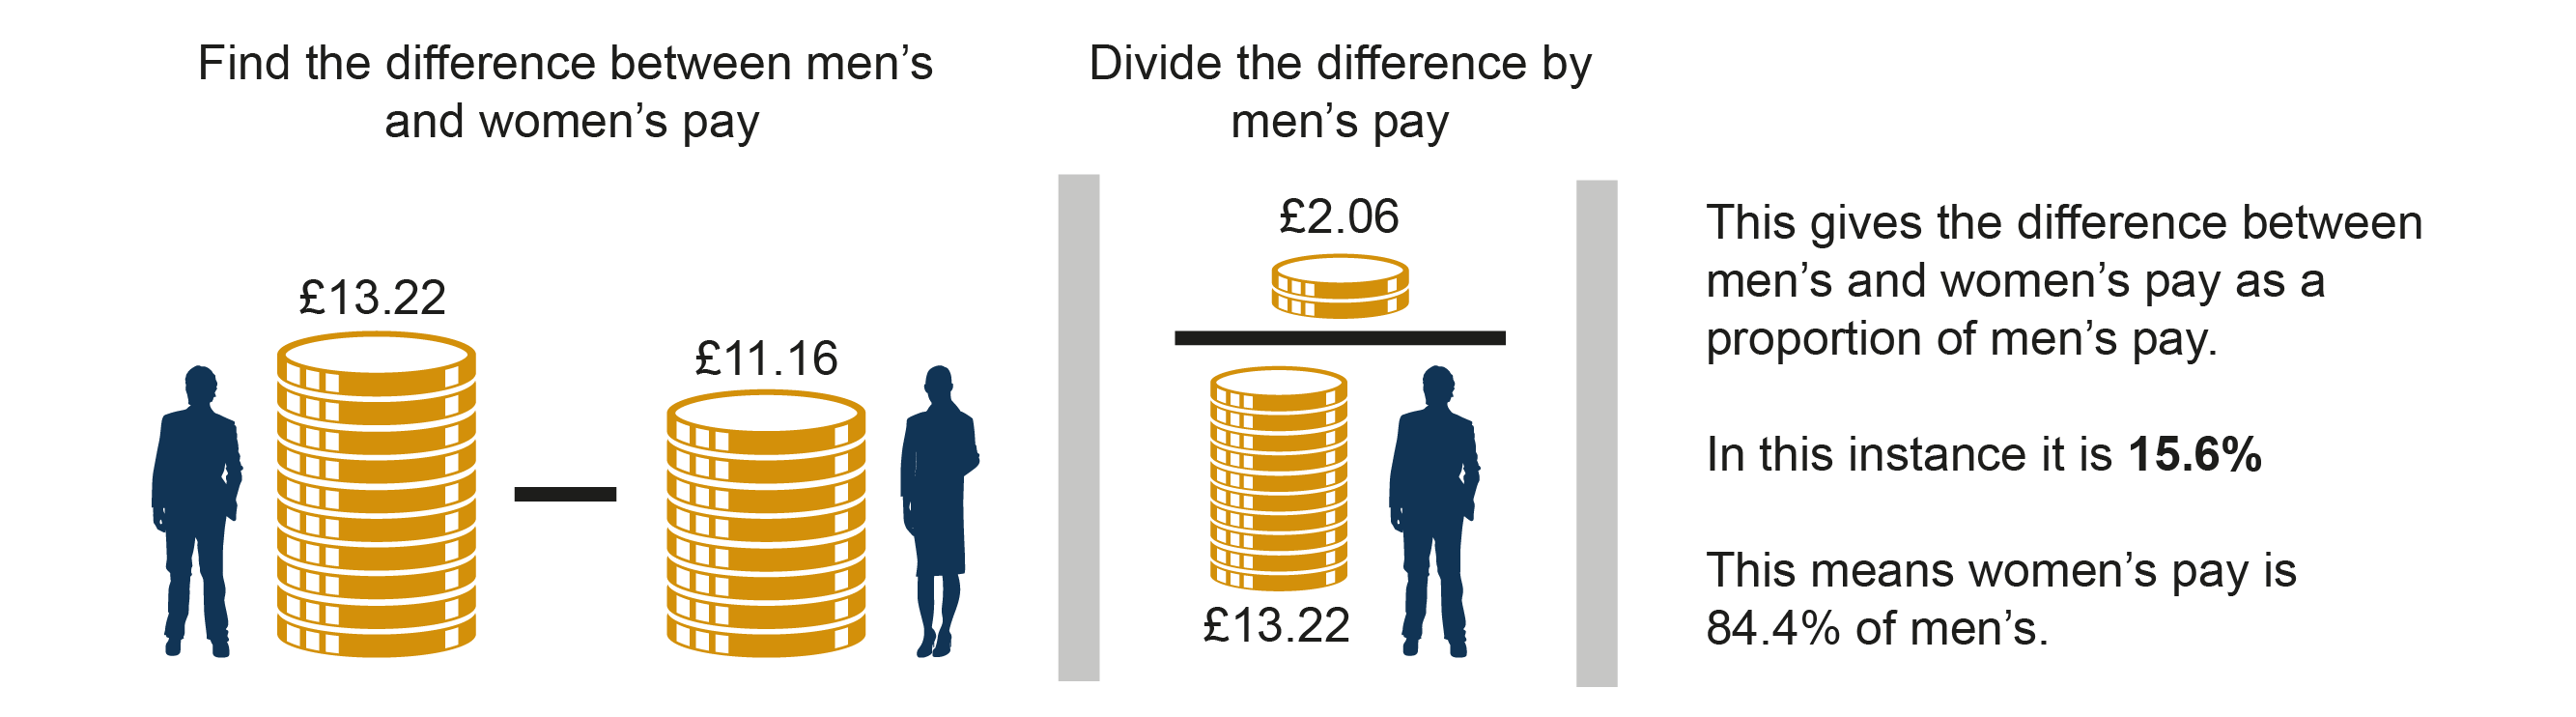 How the gender pay gap is calculated